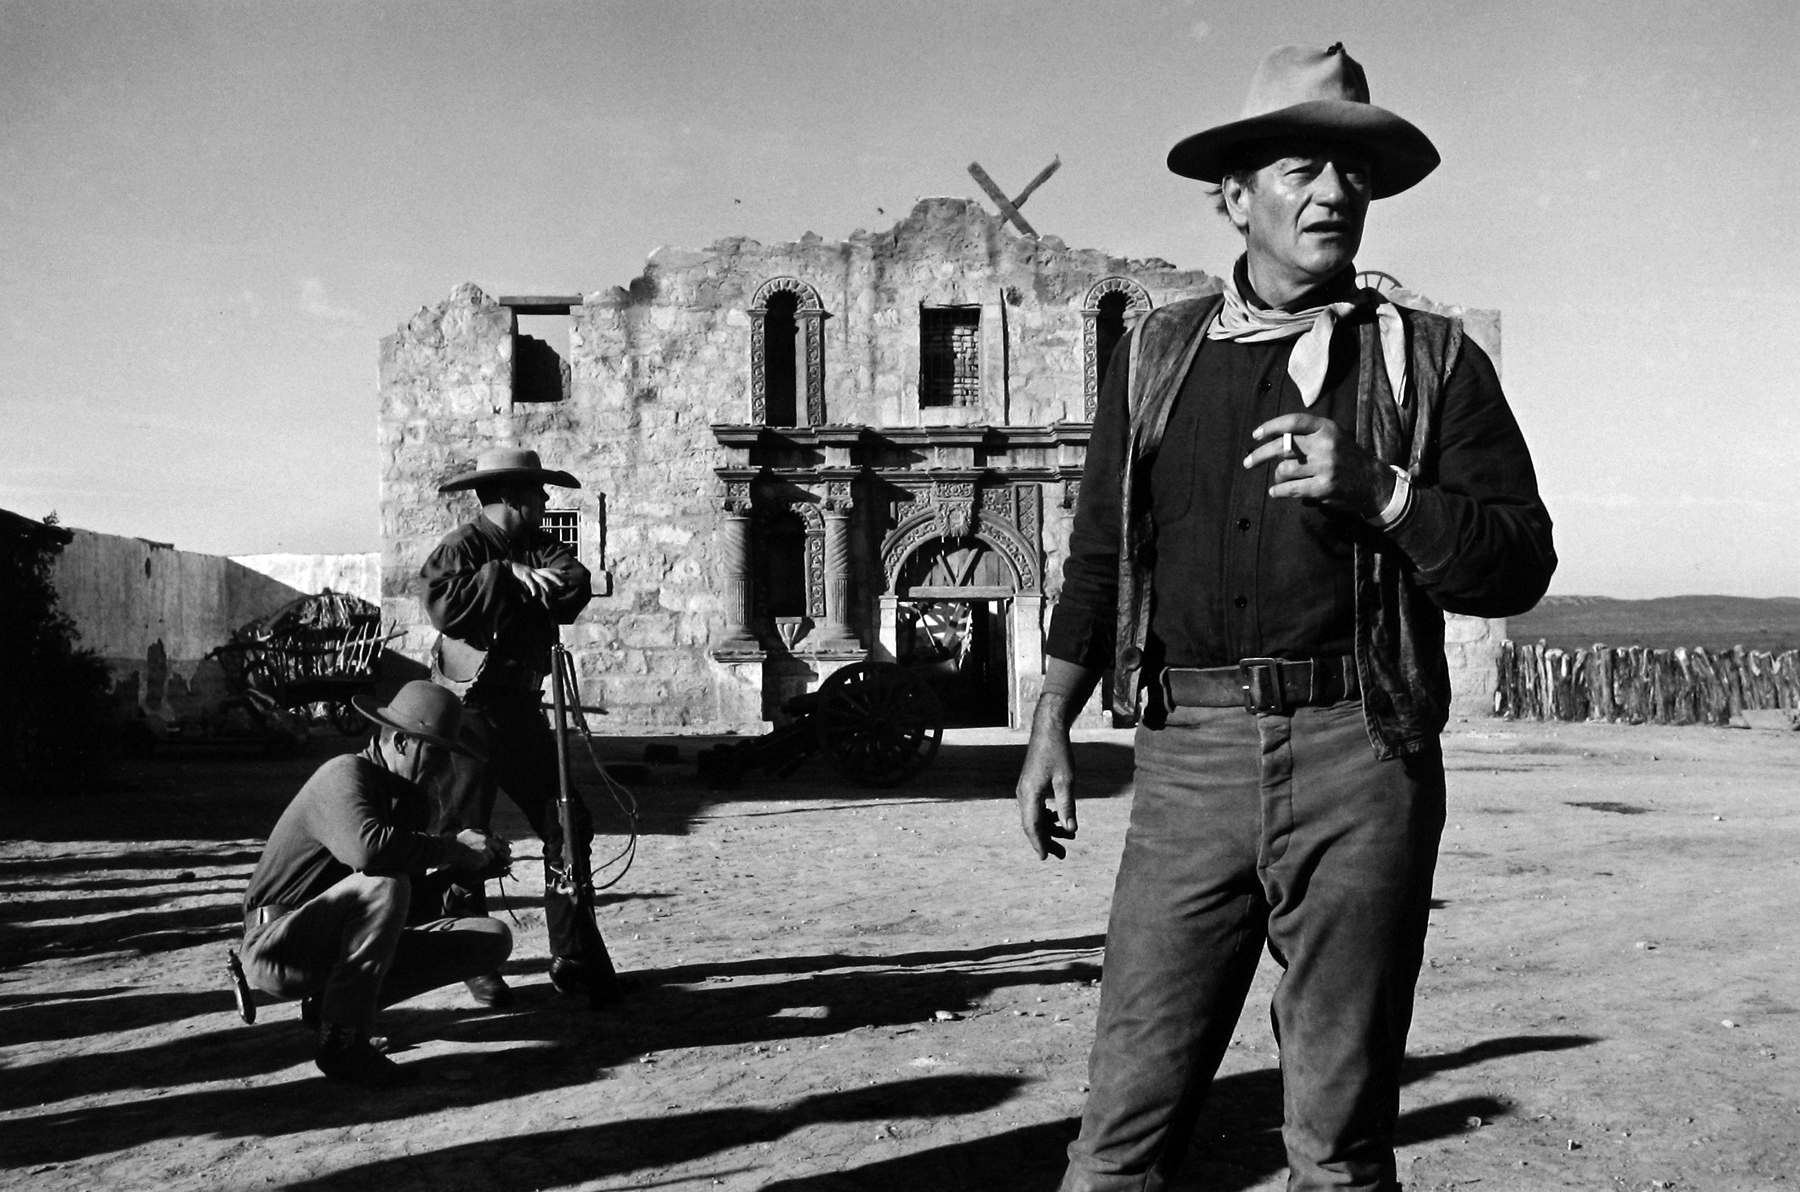 """John Wayne on set of """"Alamo""""  Gel silver print   DENNIS STOCK (1928-2010)    Dennis Stock, a native New Yorker and a Navy veteran, became an apprentice to Life magazine photographer Gjon Mili in 1947; 4 years later he entered a Life magazine contest for young photographers and won first prize for a series on immigrants. He joined Magnum Photo Agency in 1951, remaining a lifelong member. Stock managed to evoke the spirit of America through his memorable portraits of Hollywood as well as the jazz scene, most notably for his iconic photos of James Dean."""